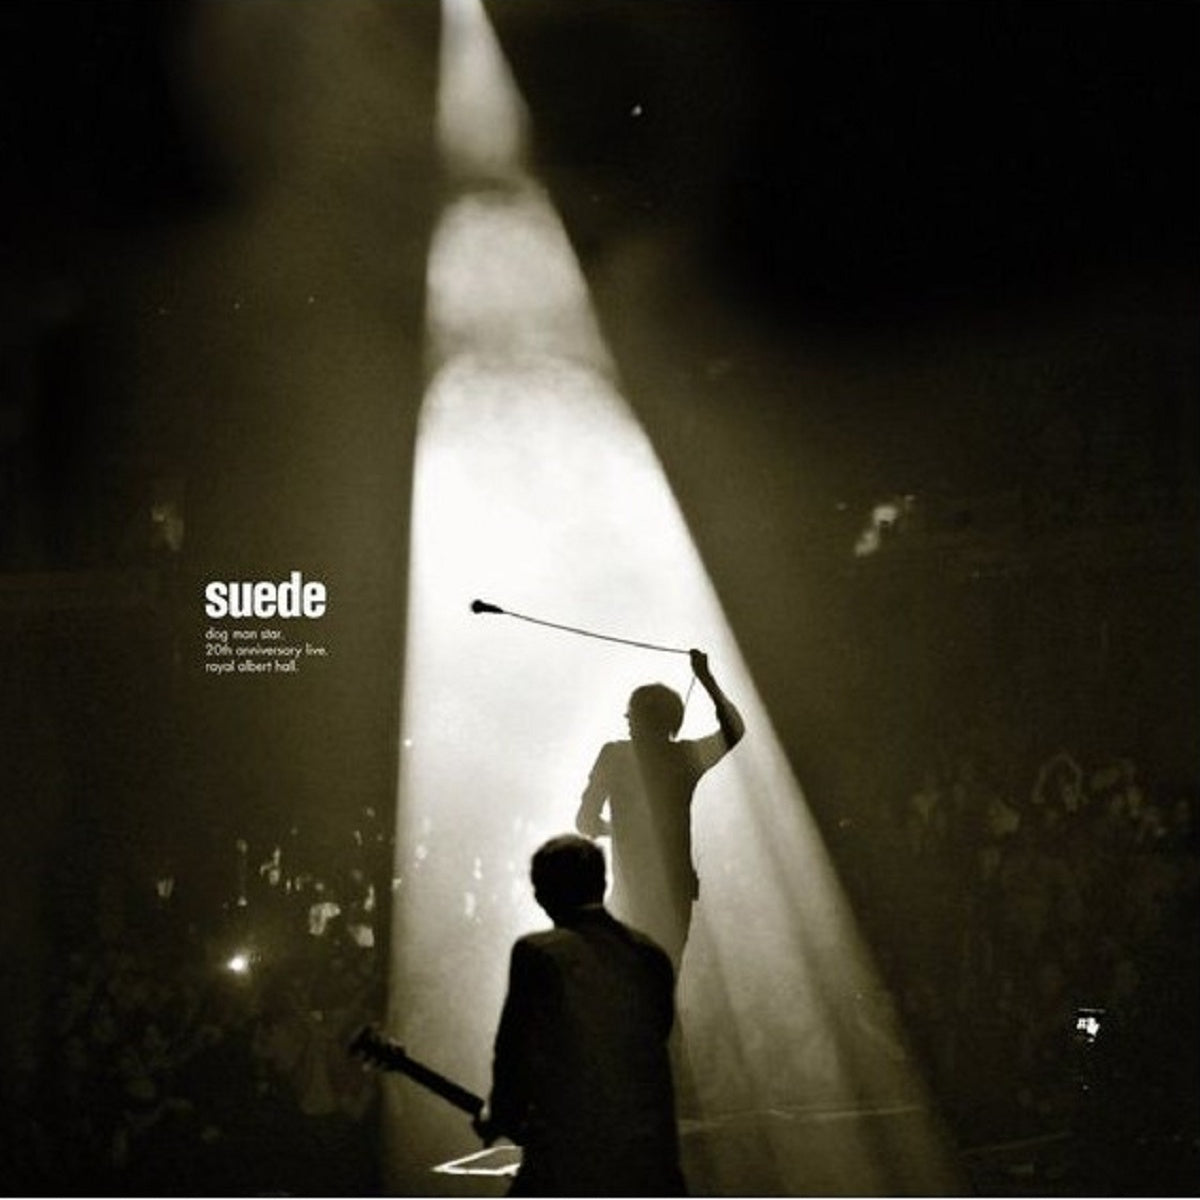 Suede - Dog Man Star. 20th Anniversary Live at Royal Albert Hall. - BROKEN 8 RECORDS